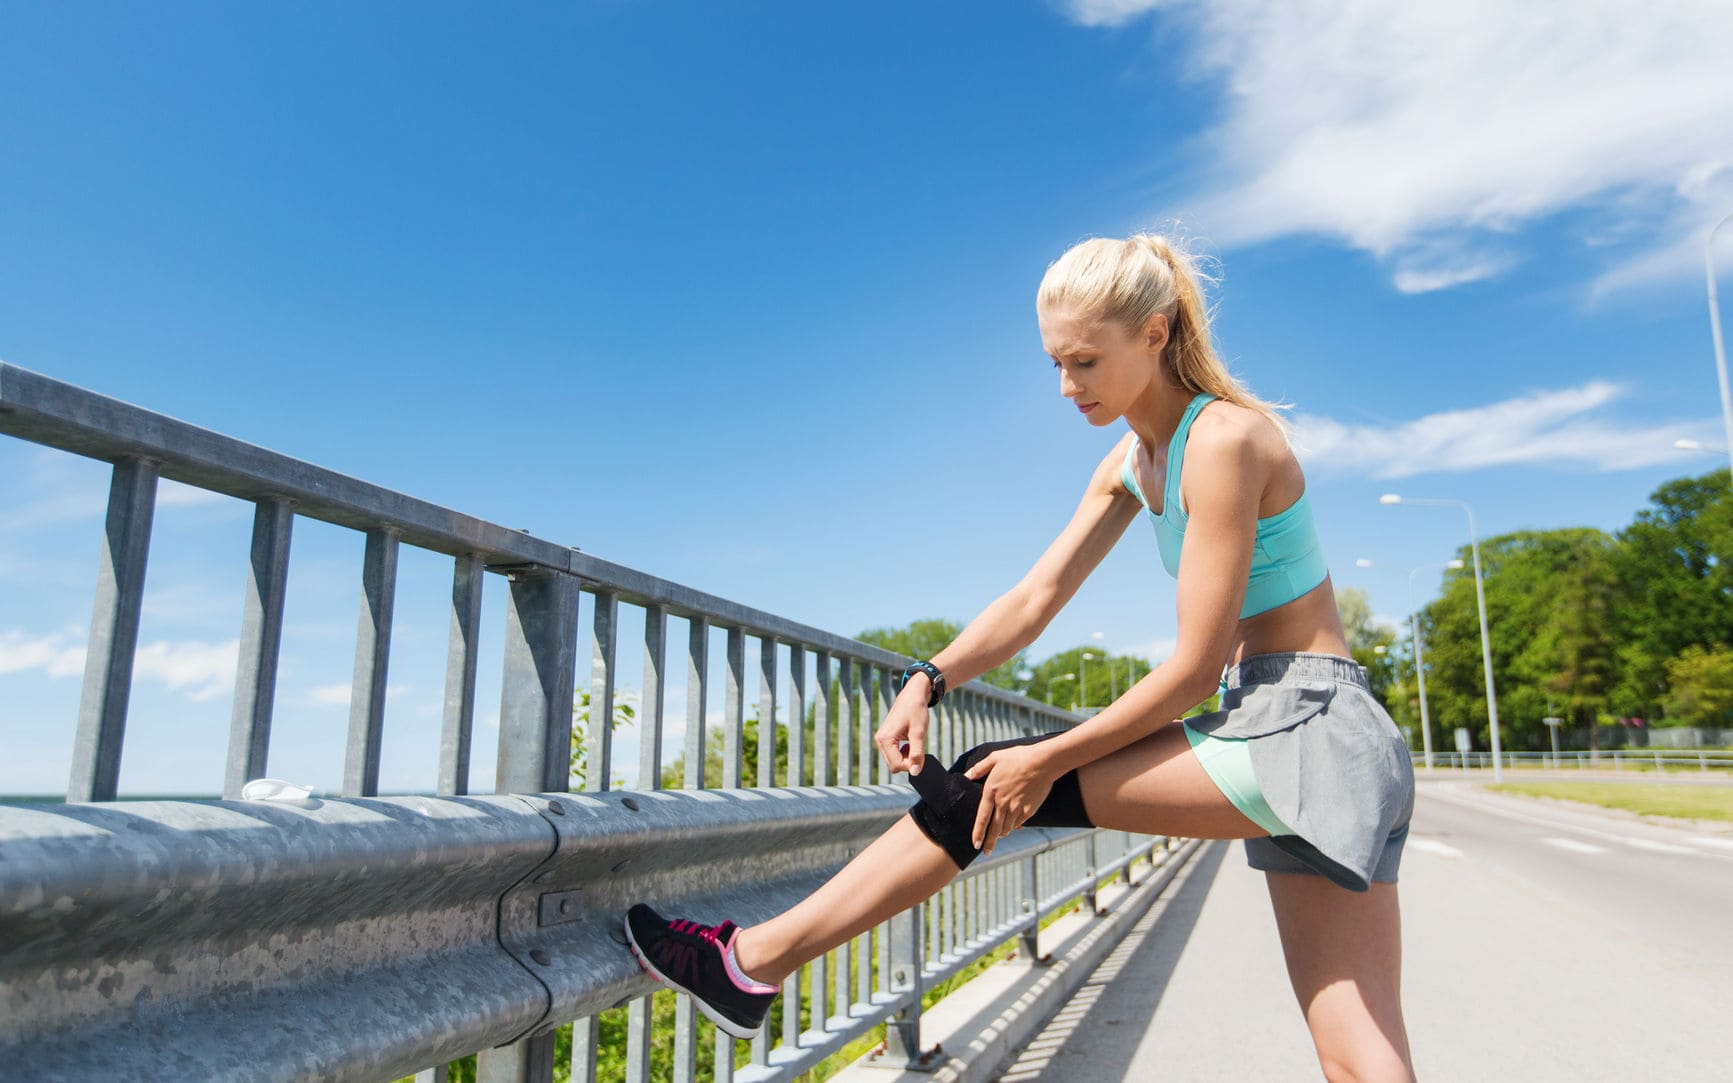 Runners with Knee Arthritis - Runner with Knee Osteoarthritis Using Knee Brace During Running | physiologicnyc.com/physical-therapy/